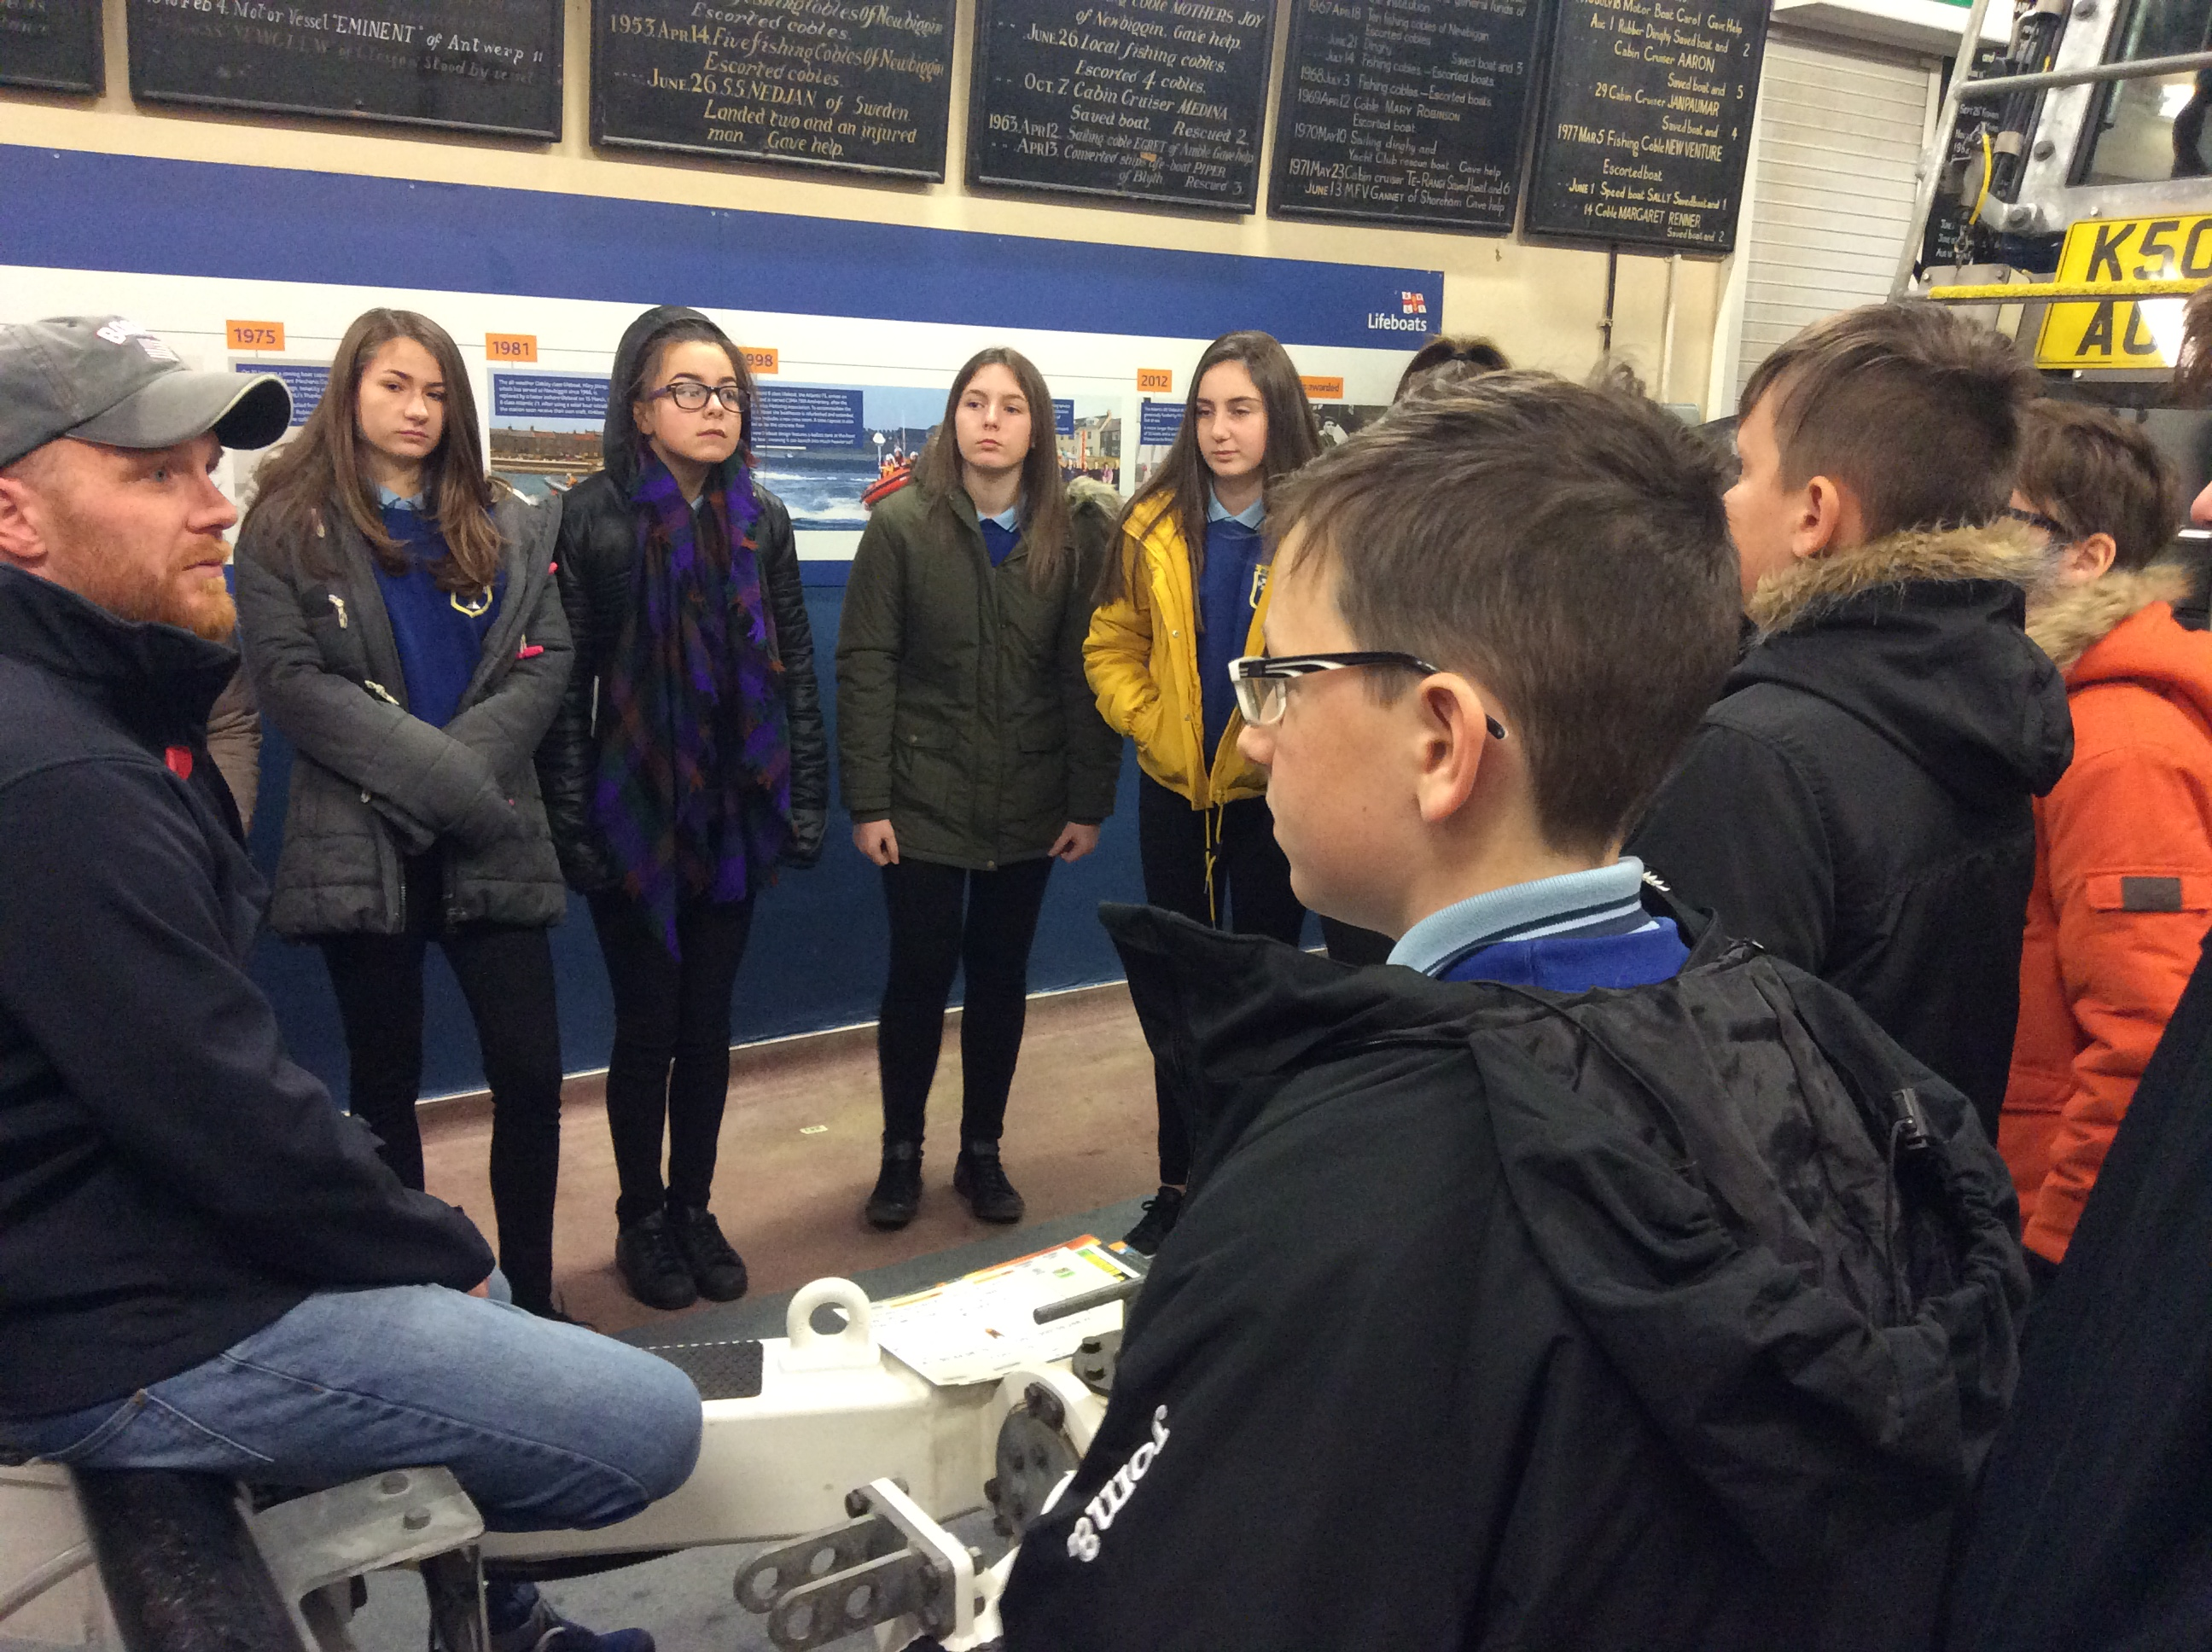 Staff and students had the opportunity to ask a range of questions on the lifeboat